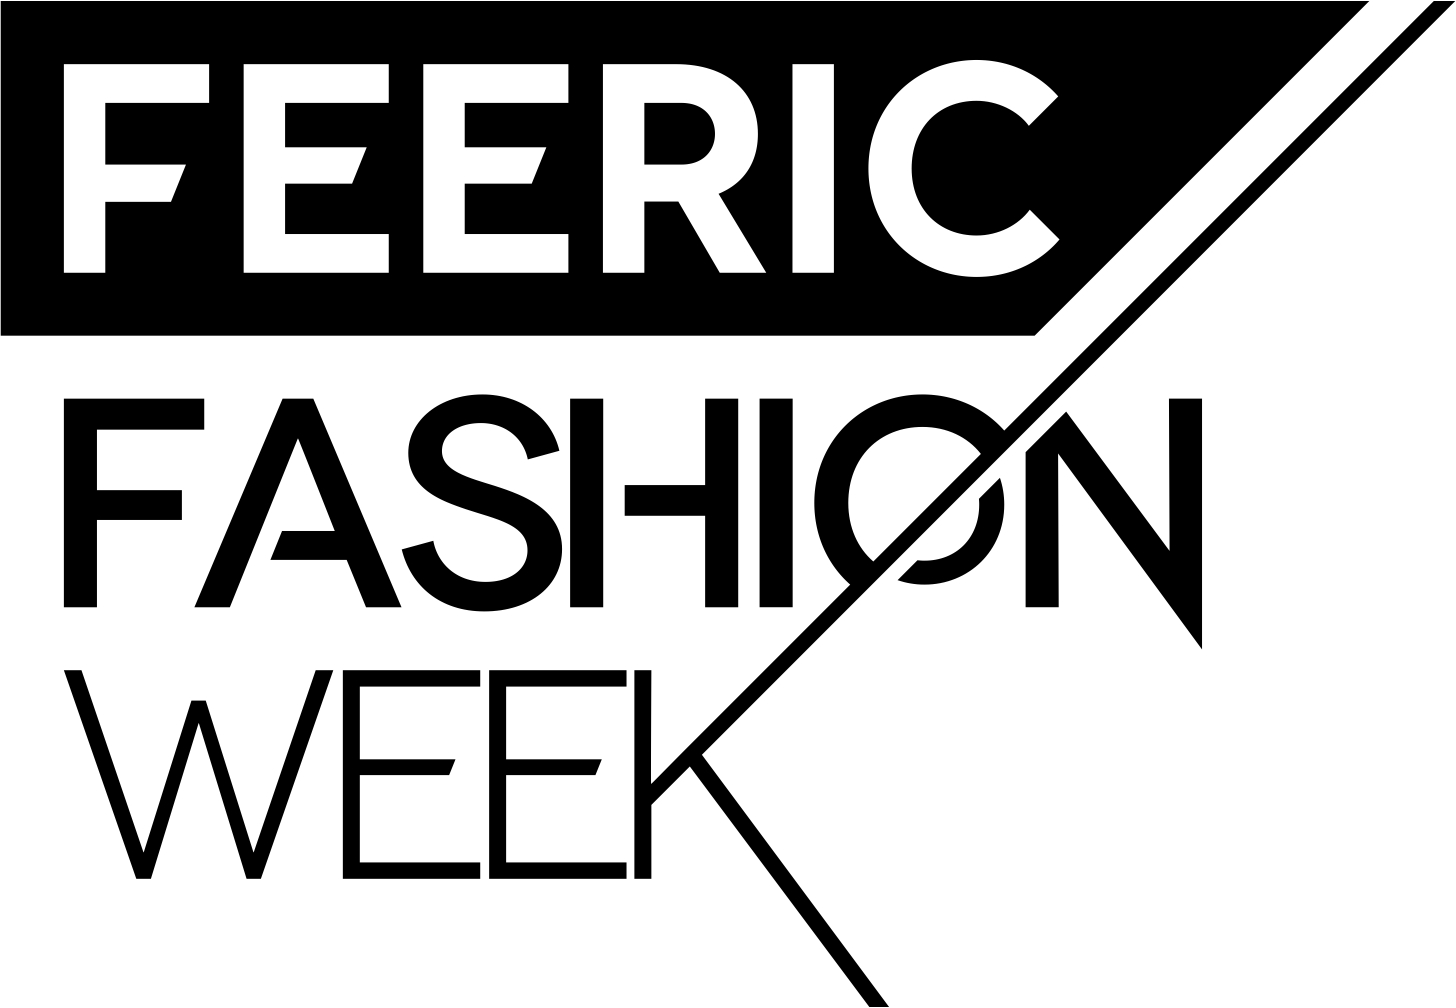 Feeric - The greatest fashion week in Eastern Europe